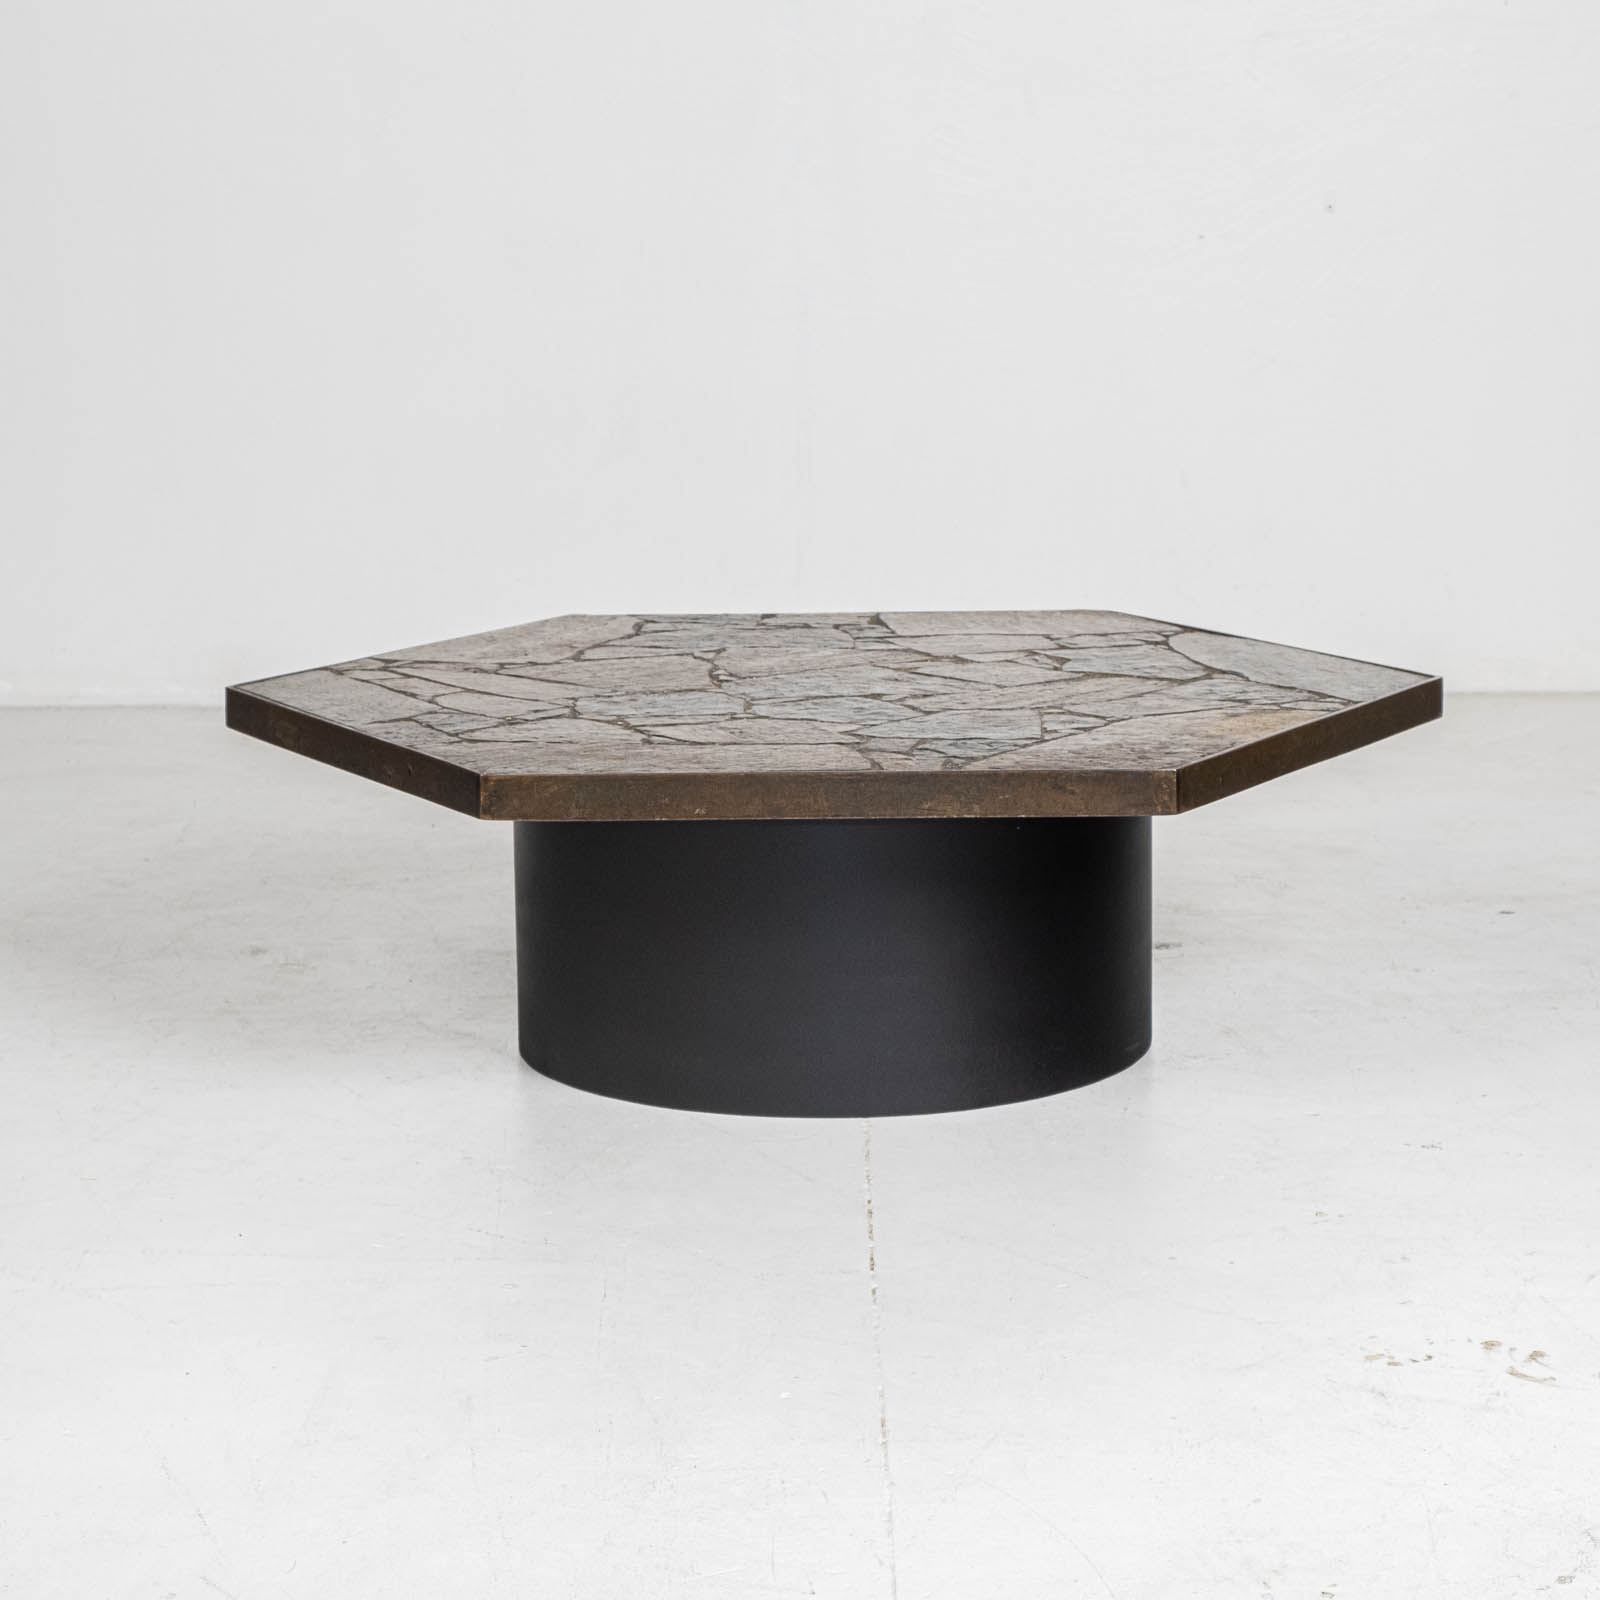 Hexagonal Coffee Table In The Style Of Paul Kingma With Stone Top And Metal Edge, 1970s, The Netherlands 00005